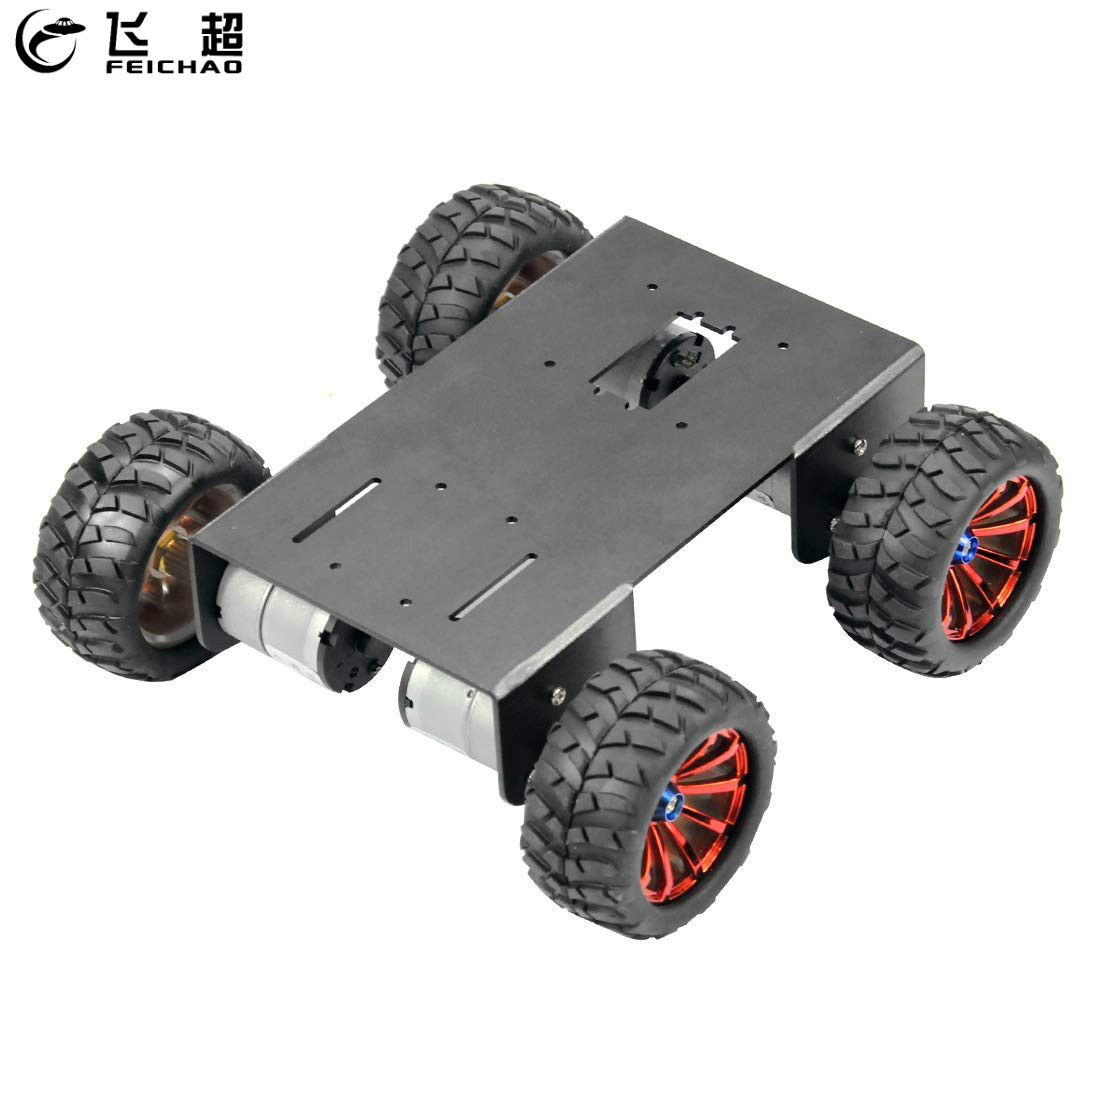 цена на 4WD RC Smart Car Chassis with 72mm Diameter ABS Wheel DIY 4 Wheel Robot for DIY Maker Eduational Teaching Kit